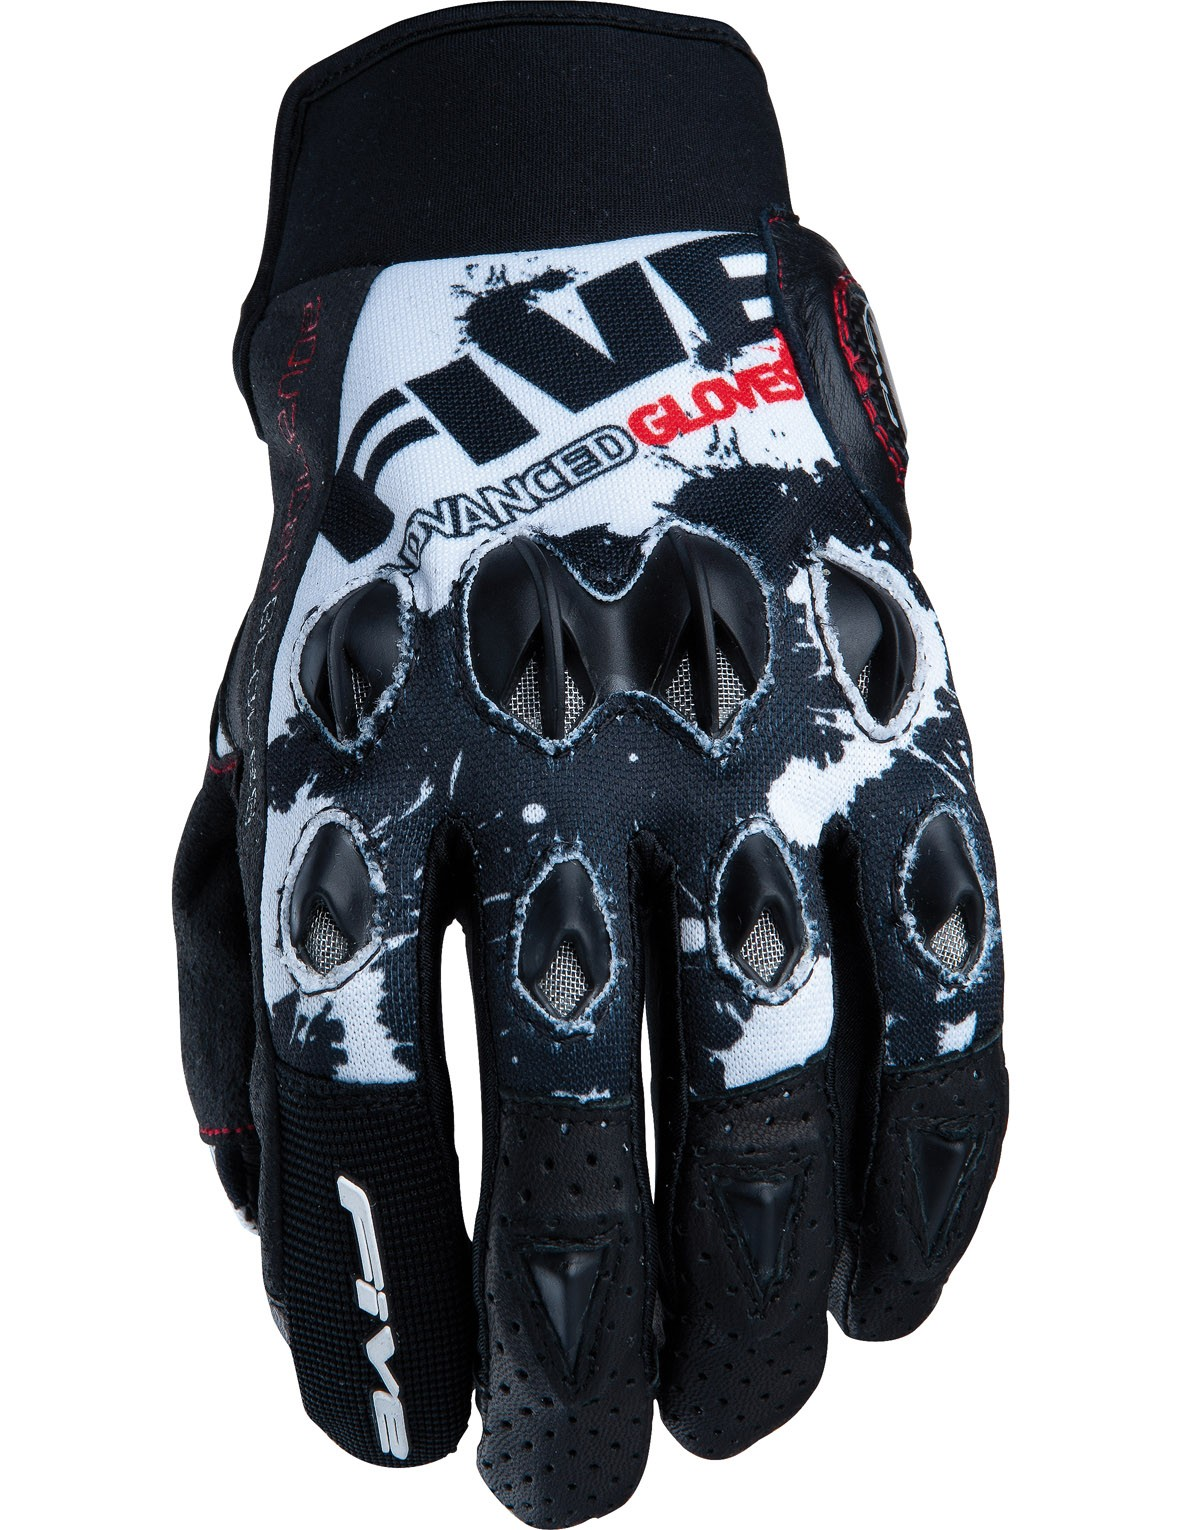 Перчатки FIVE, STUNT REPLICA Splash black/white M